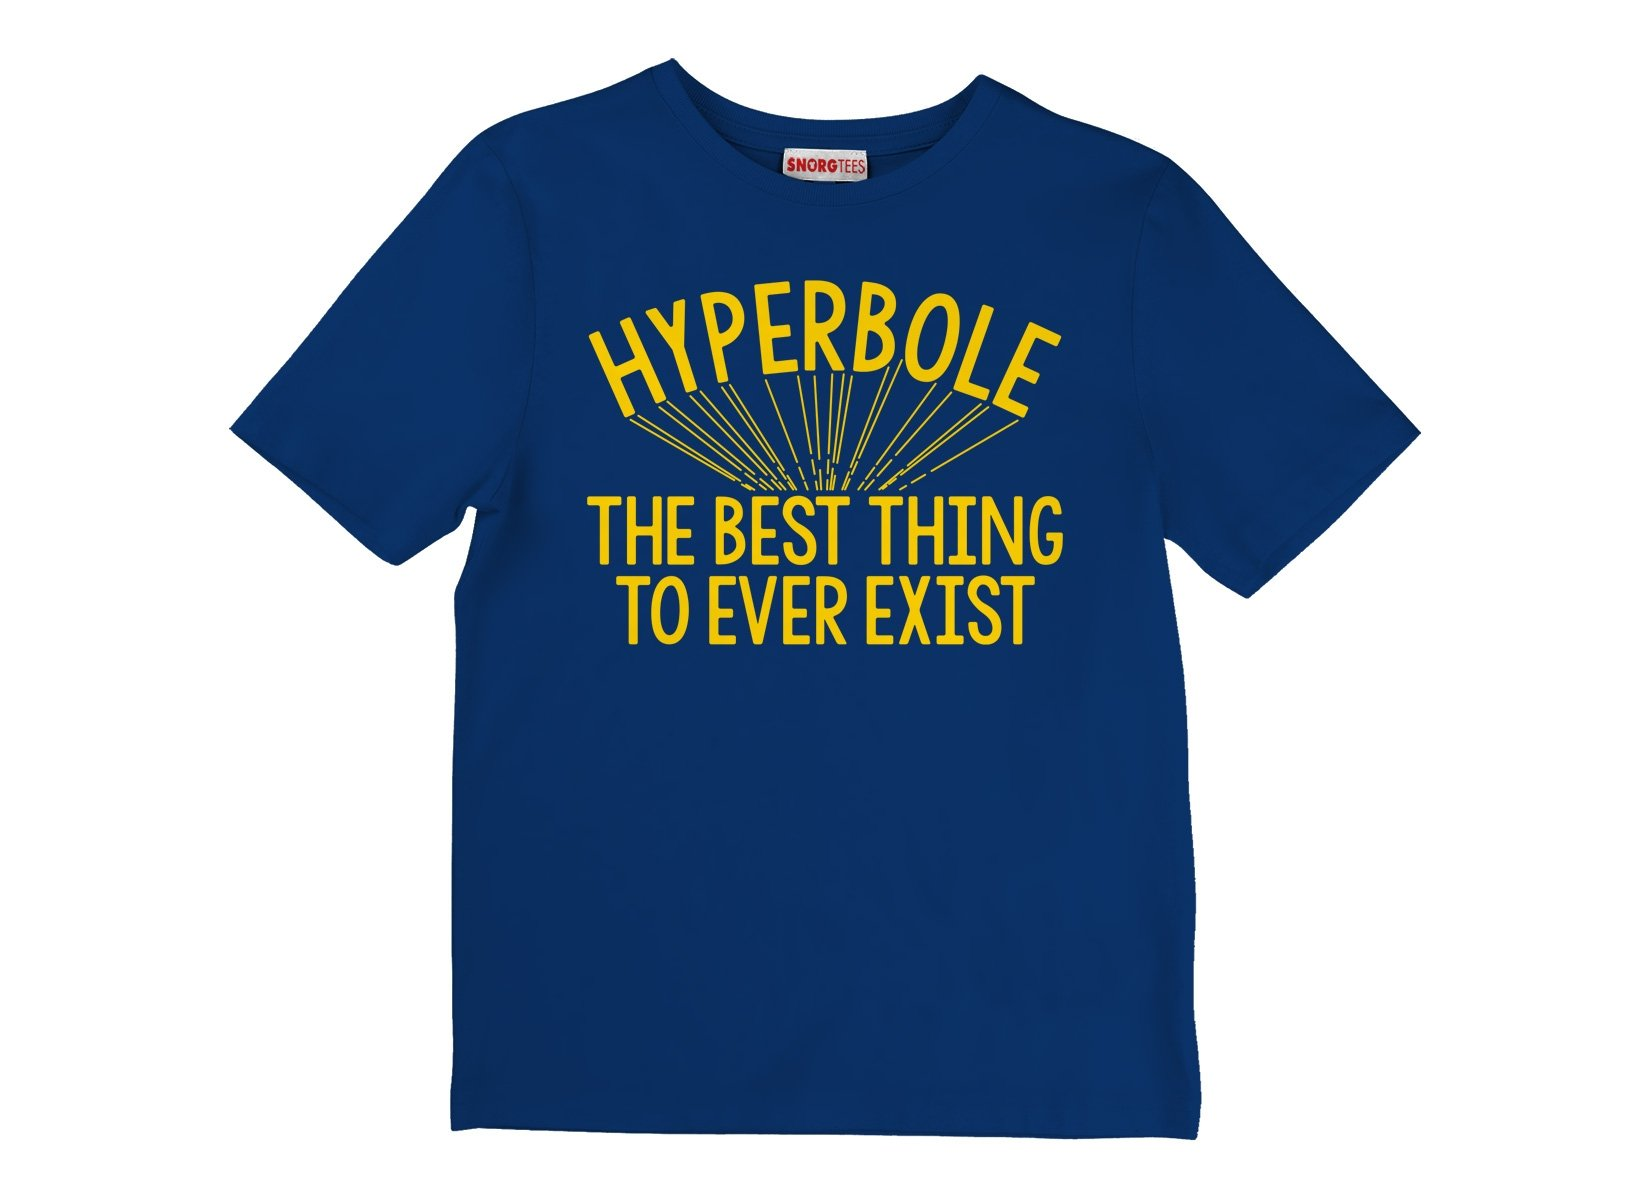 Hyperbole The Best Thing To Ever Exist on Kids T-Shirt